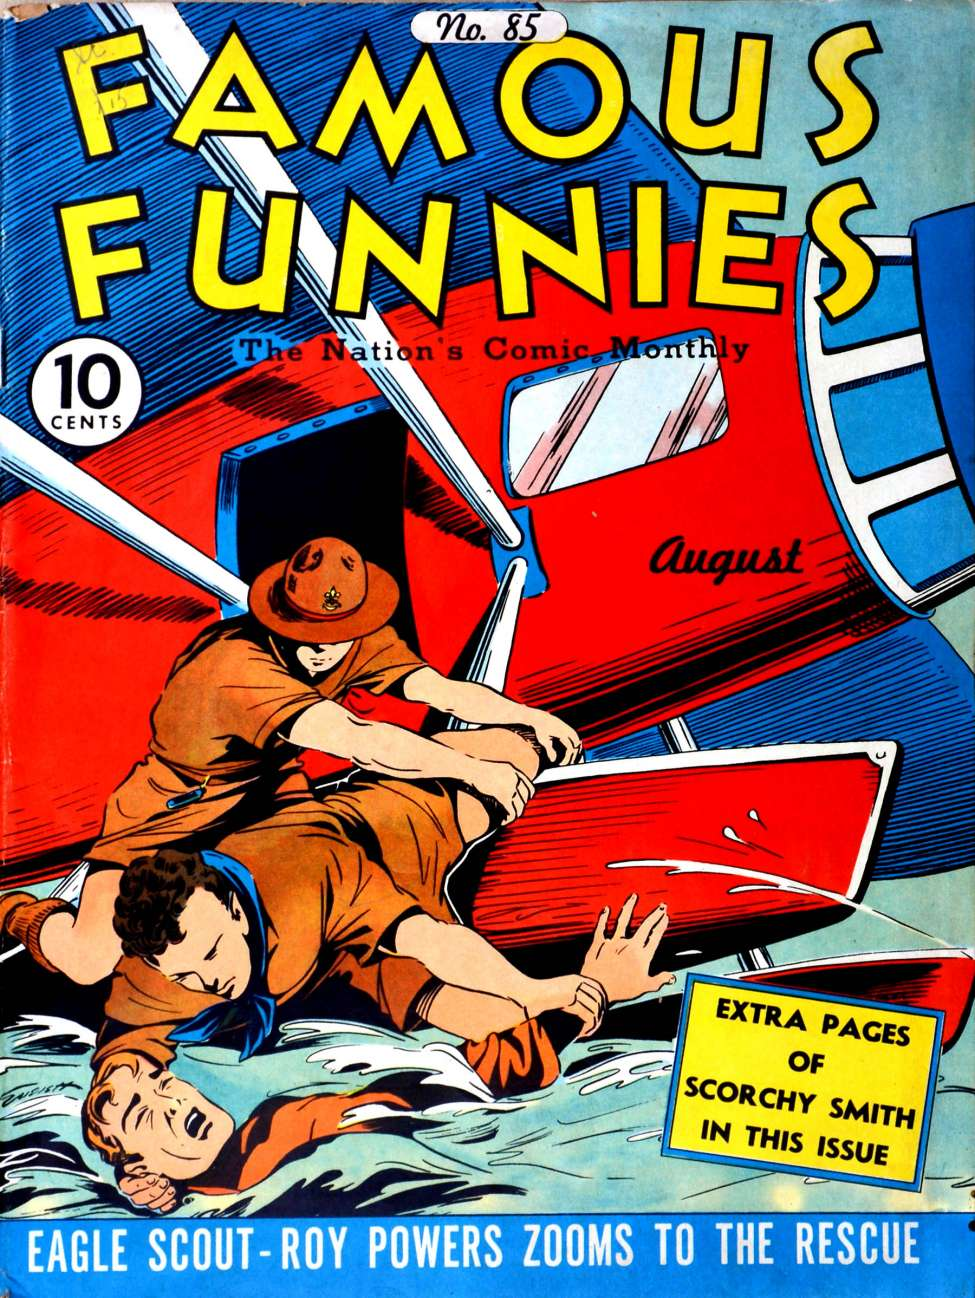 Comic Book Cover For Famous Funnies #85 - Version 1